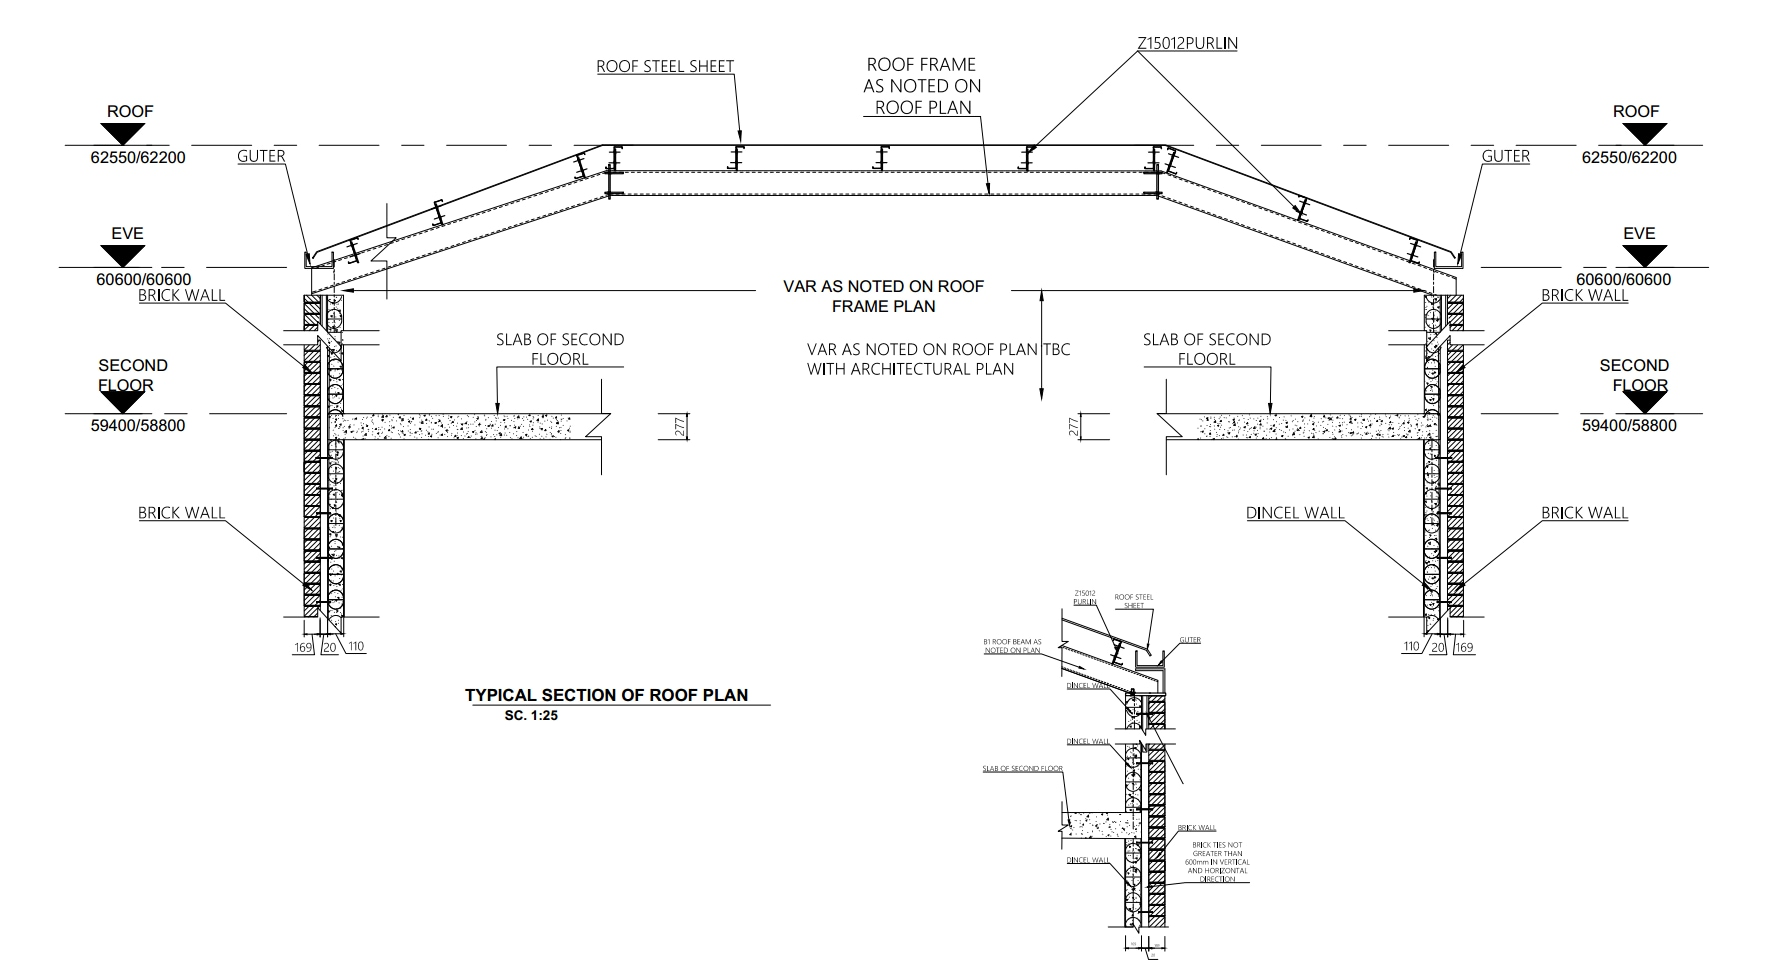 Luff Pier Engineering Consulting Building Contractor Structural Wall Schematic Diagram Pic 8